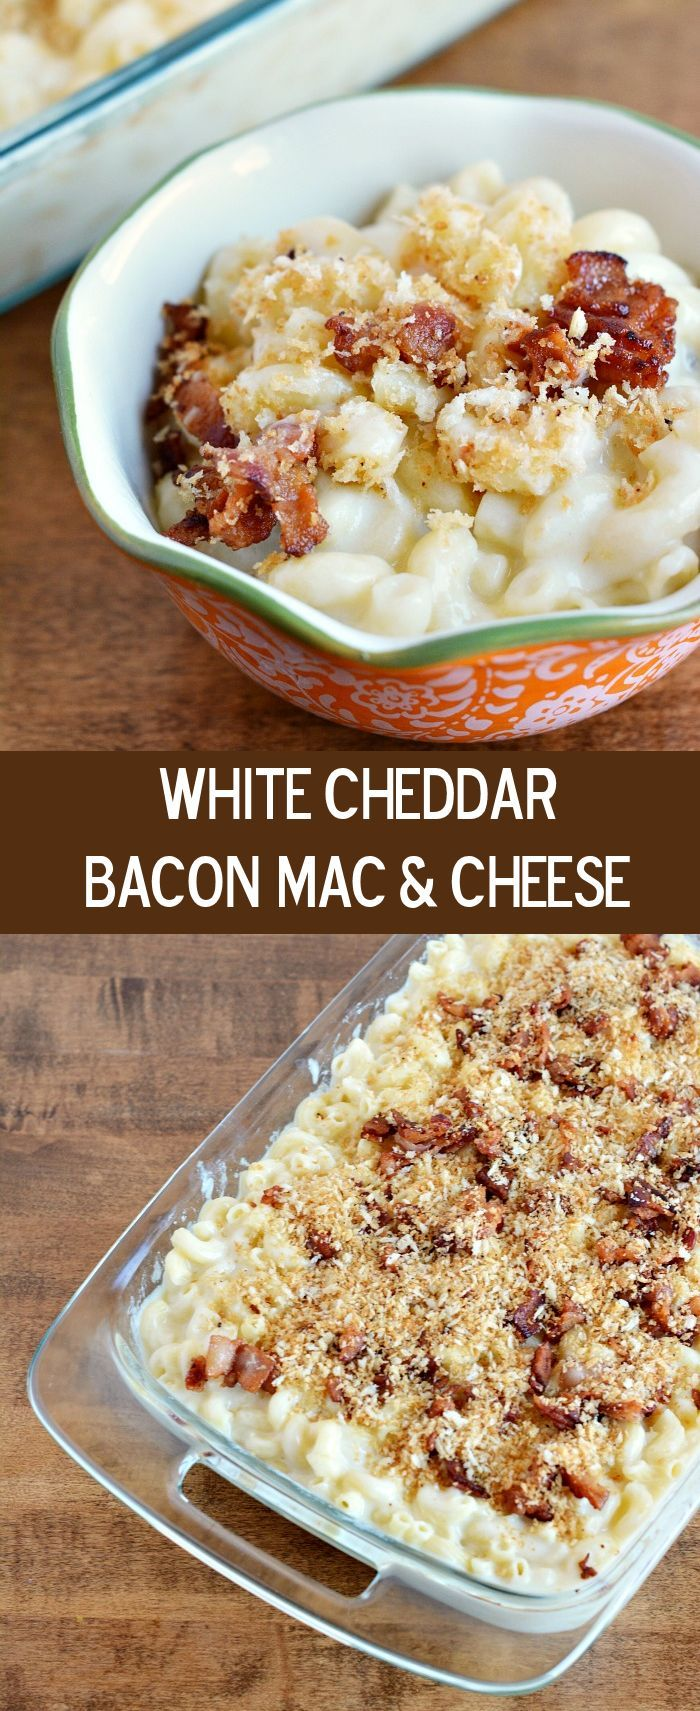 White Cheddar Bacon Macaroni And Cheese Recipe With Images